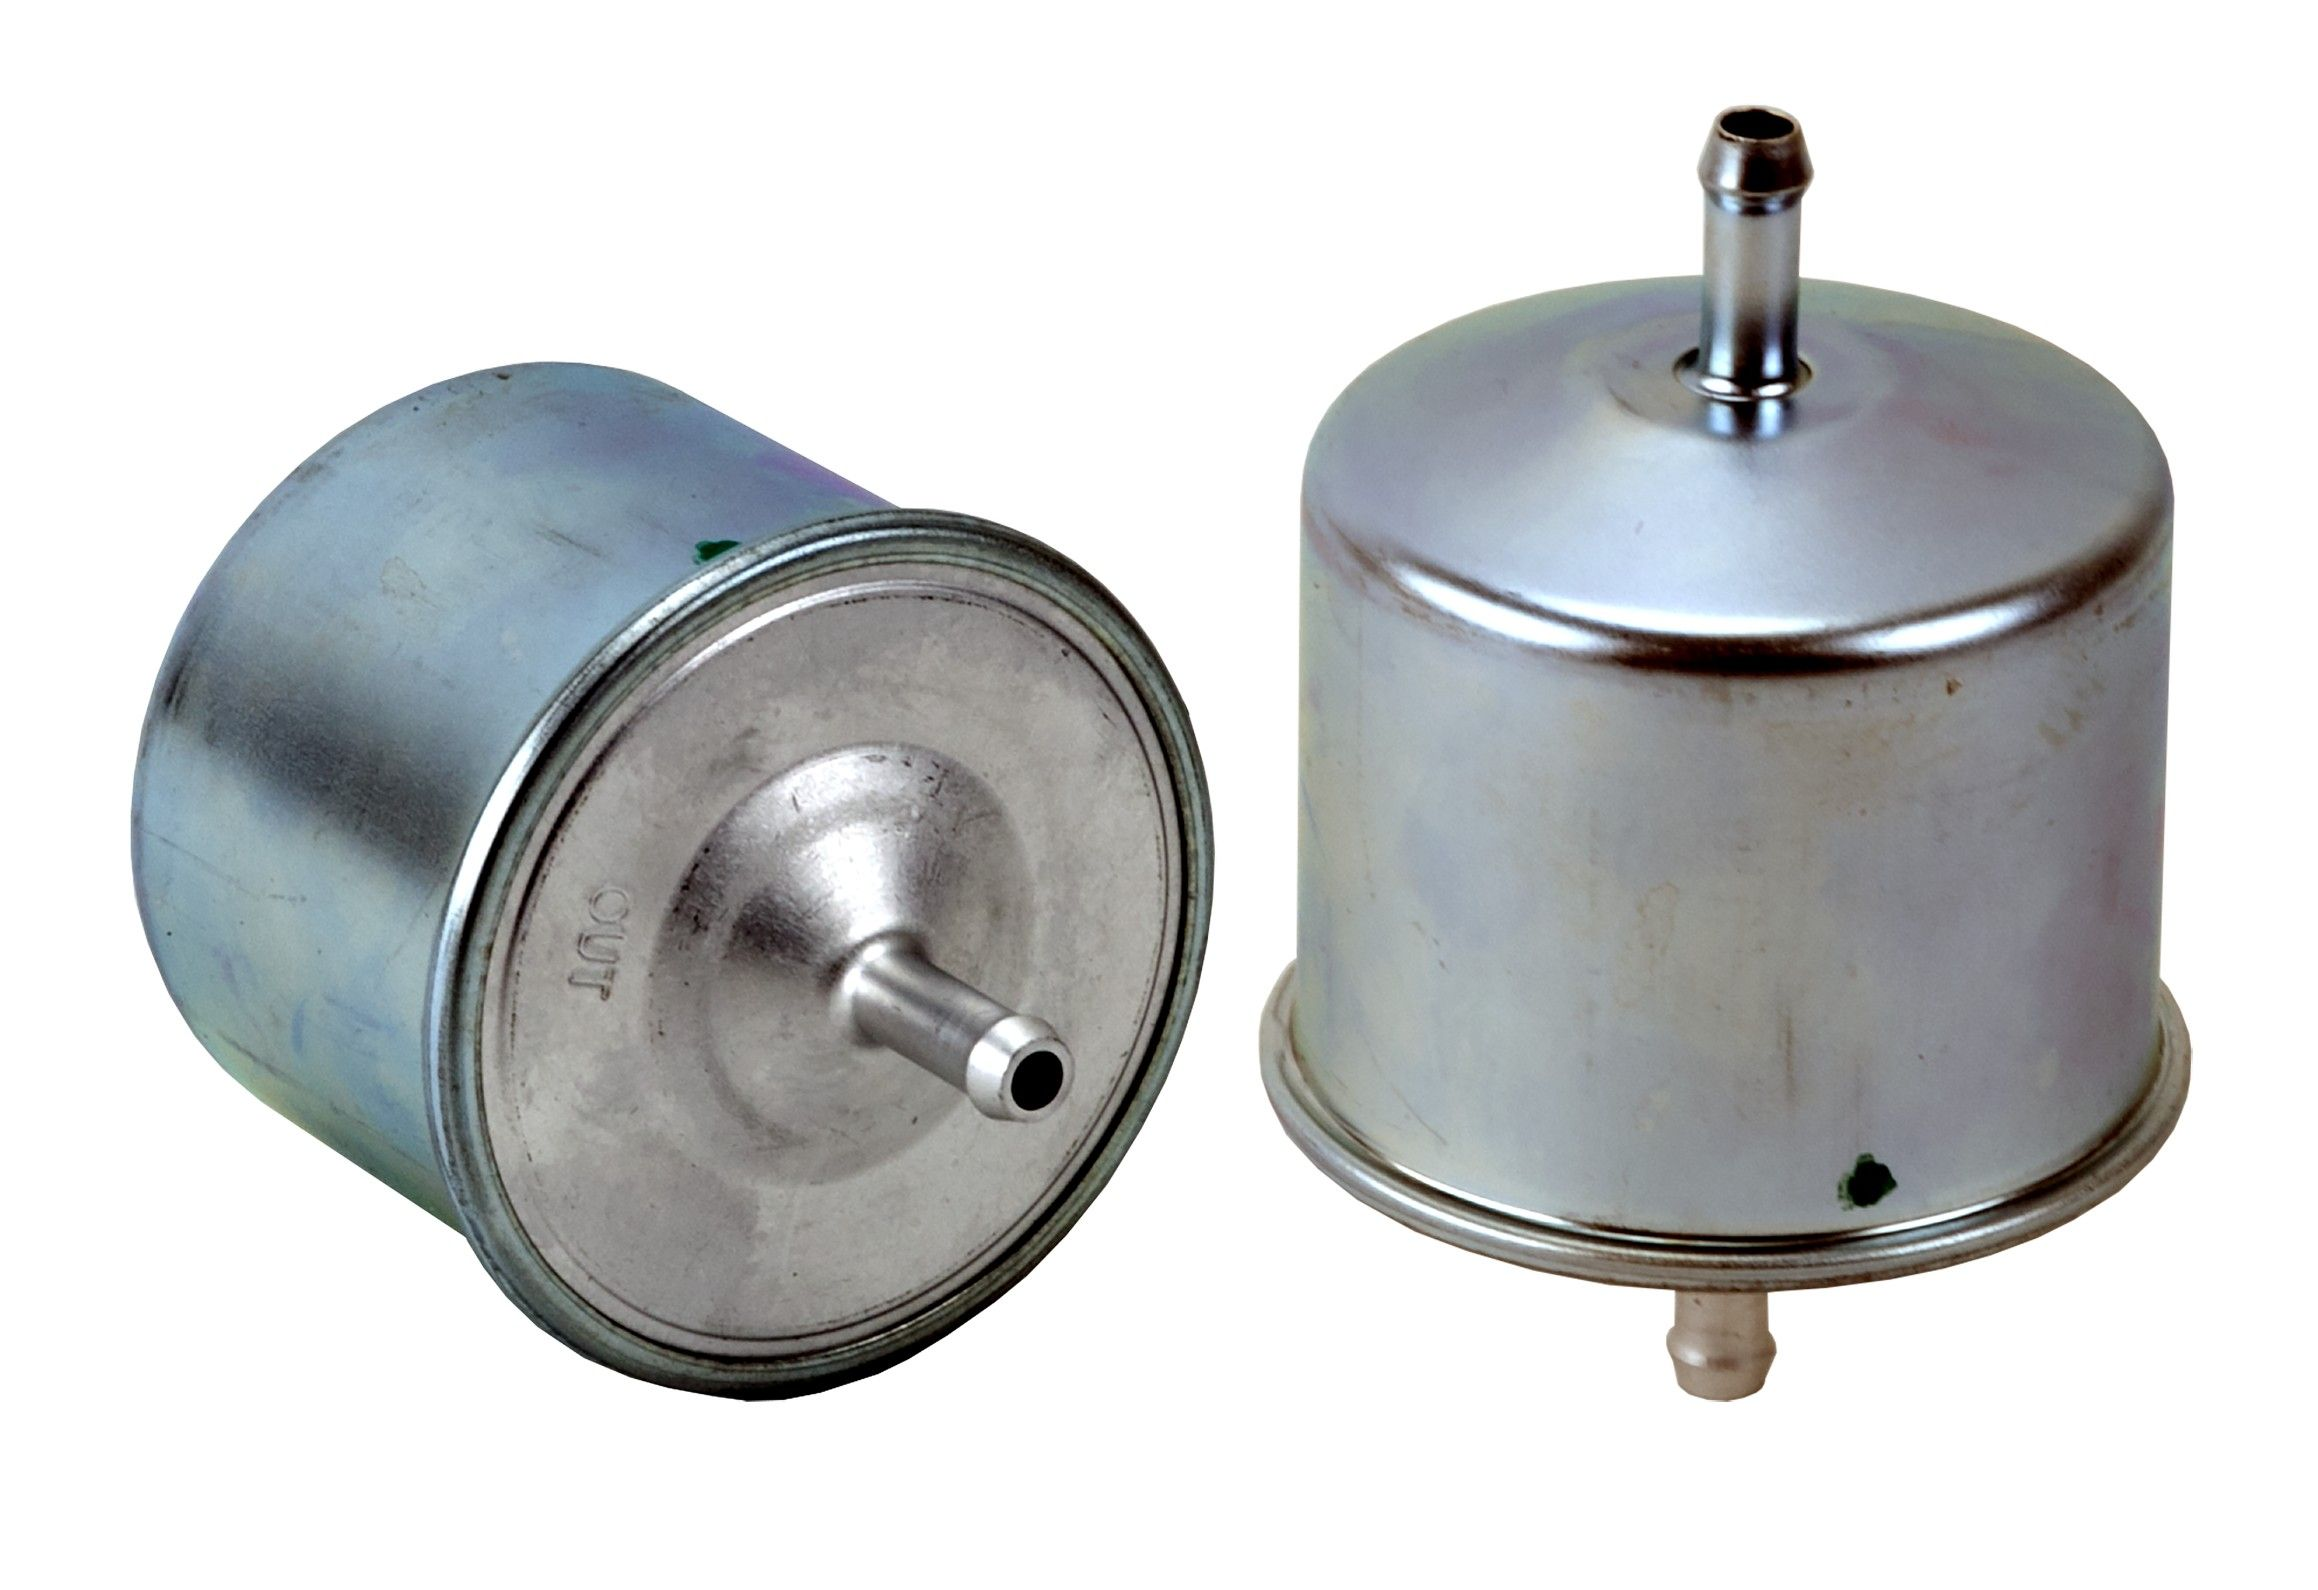 Jaguar Xj6 Fuel Filter Replacement Beck Arnley Fram Hastings 2002 Location 1975 6 Cyl 42l Wix 33022